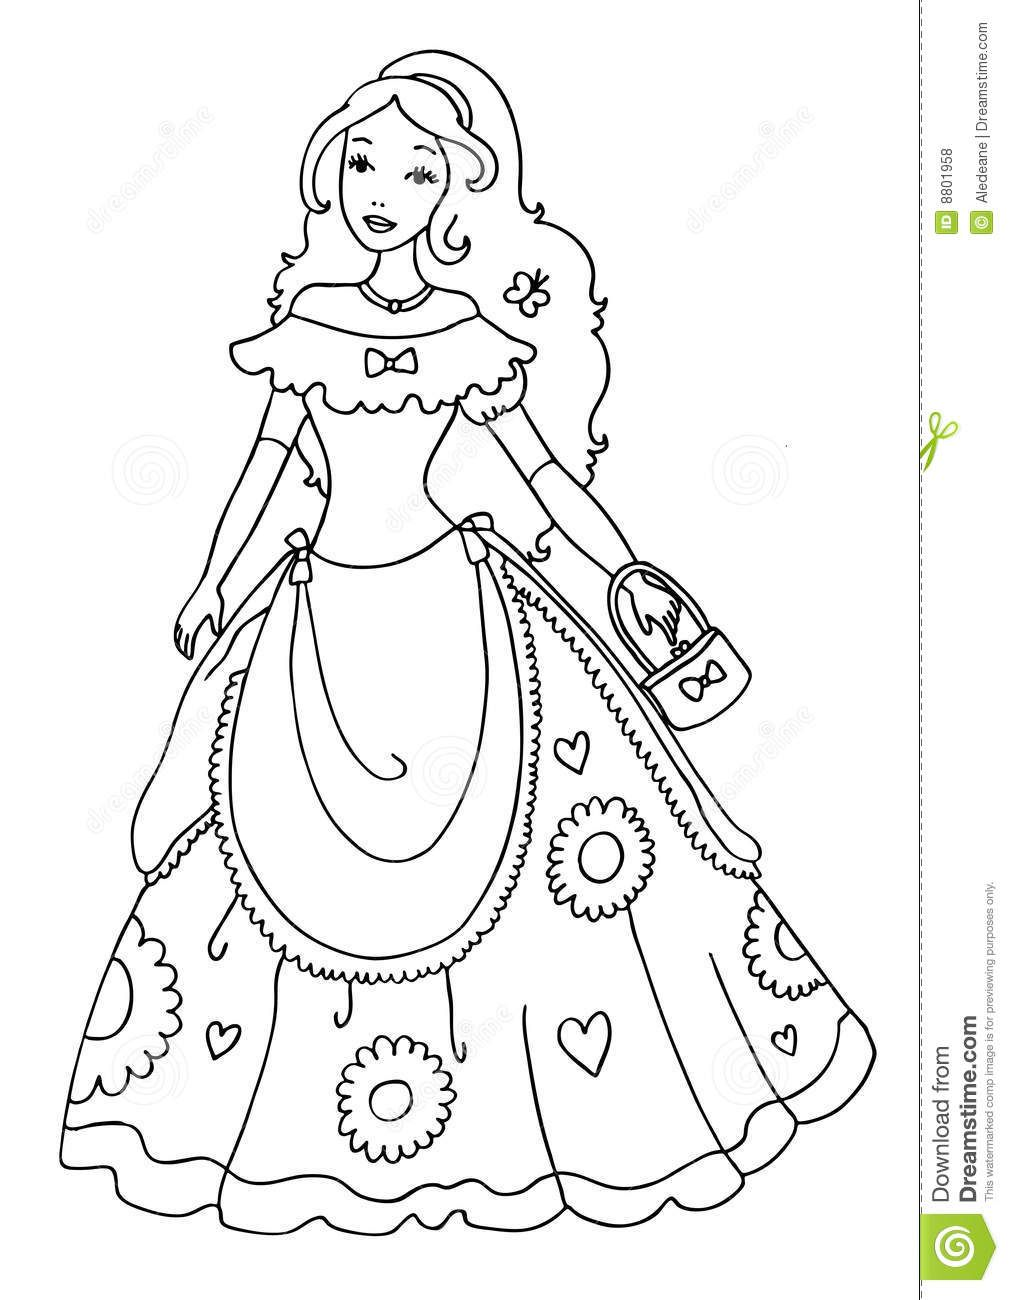 Princess Coloring Pages Free   COLORING PAGES FOR FREE   Pinterest ...